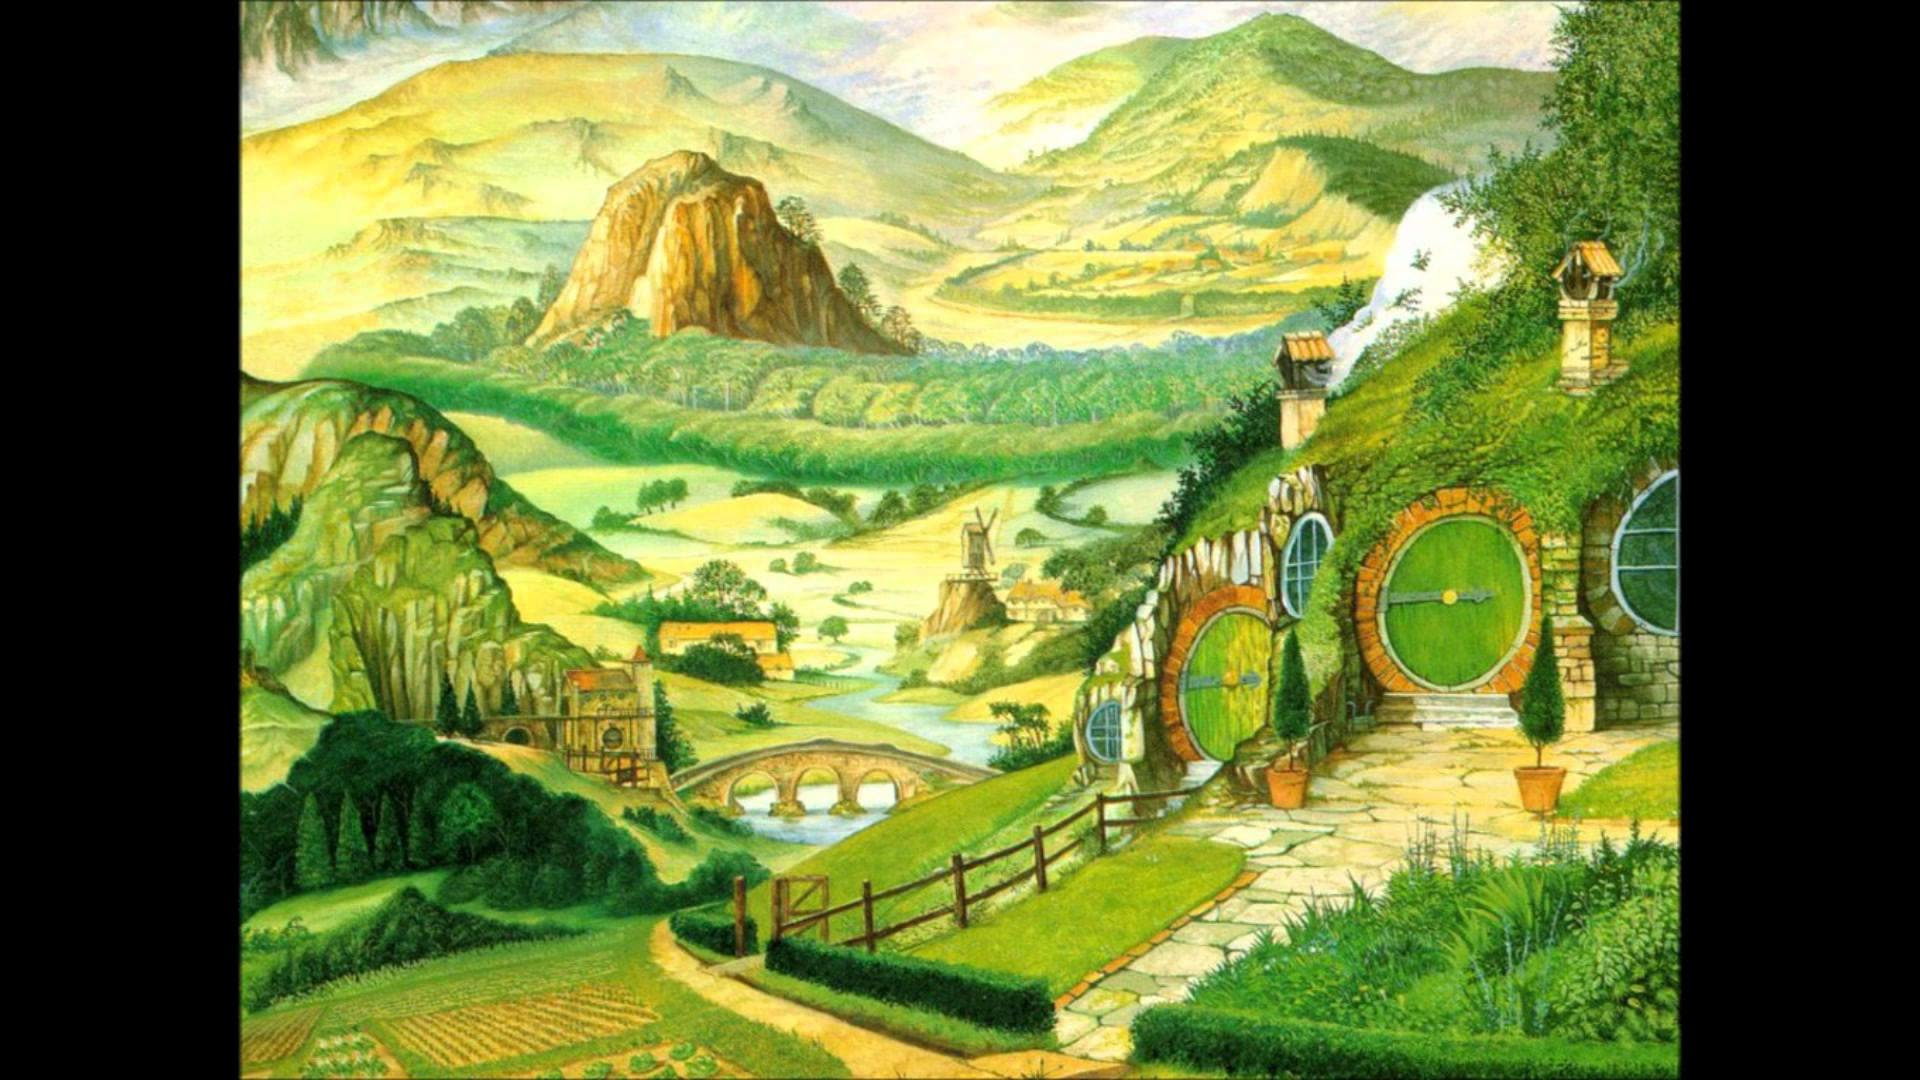 The Hobbit The Shire Wallpaper 69 Images